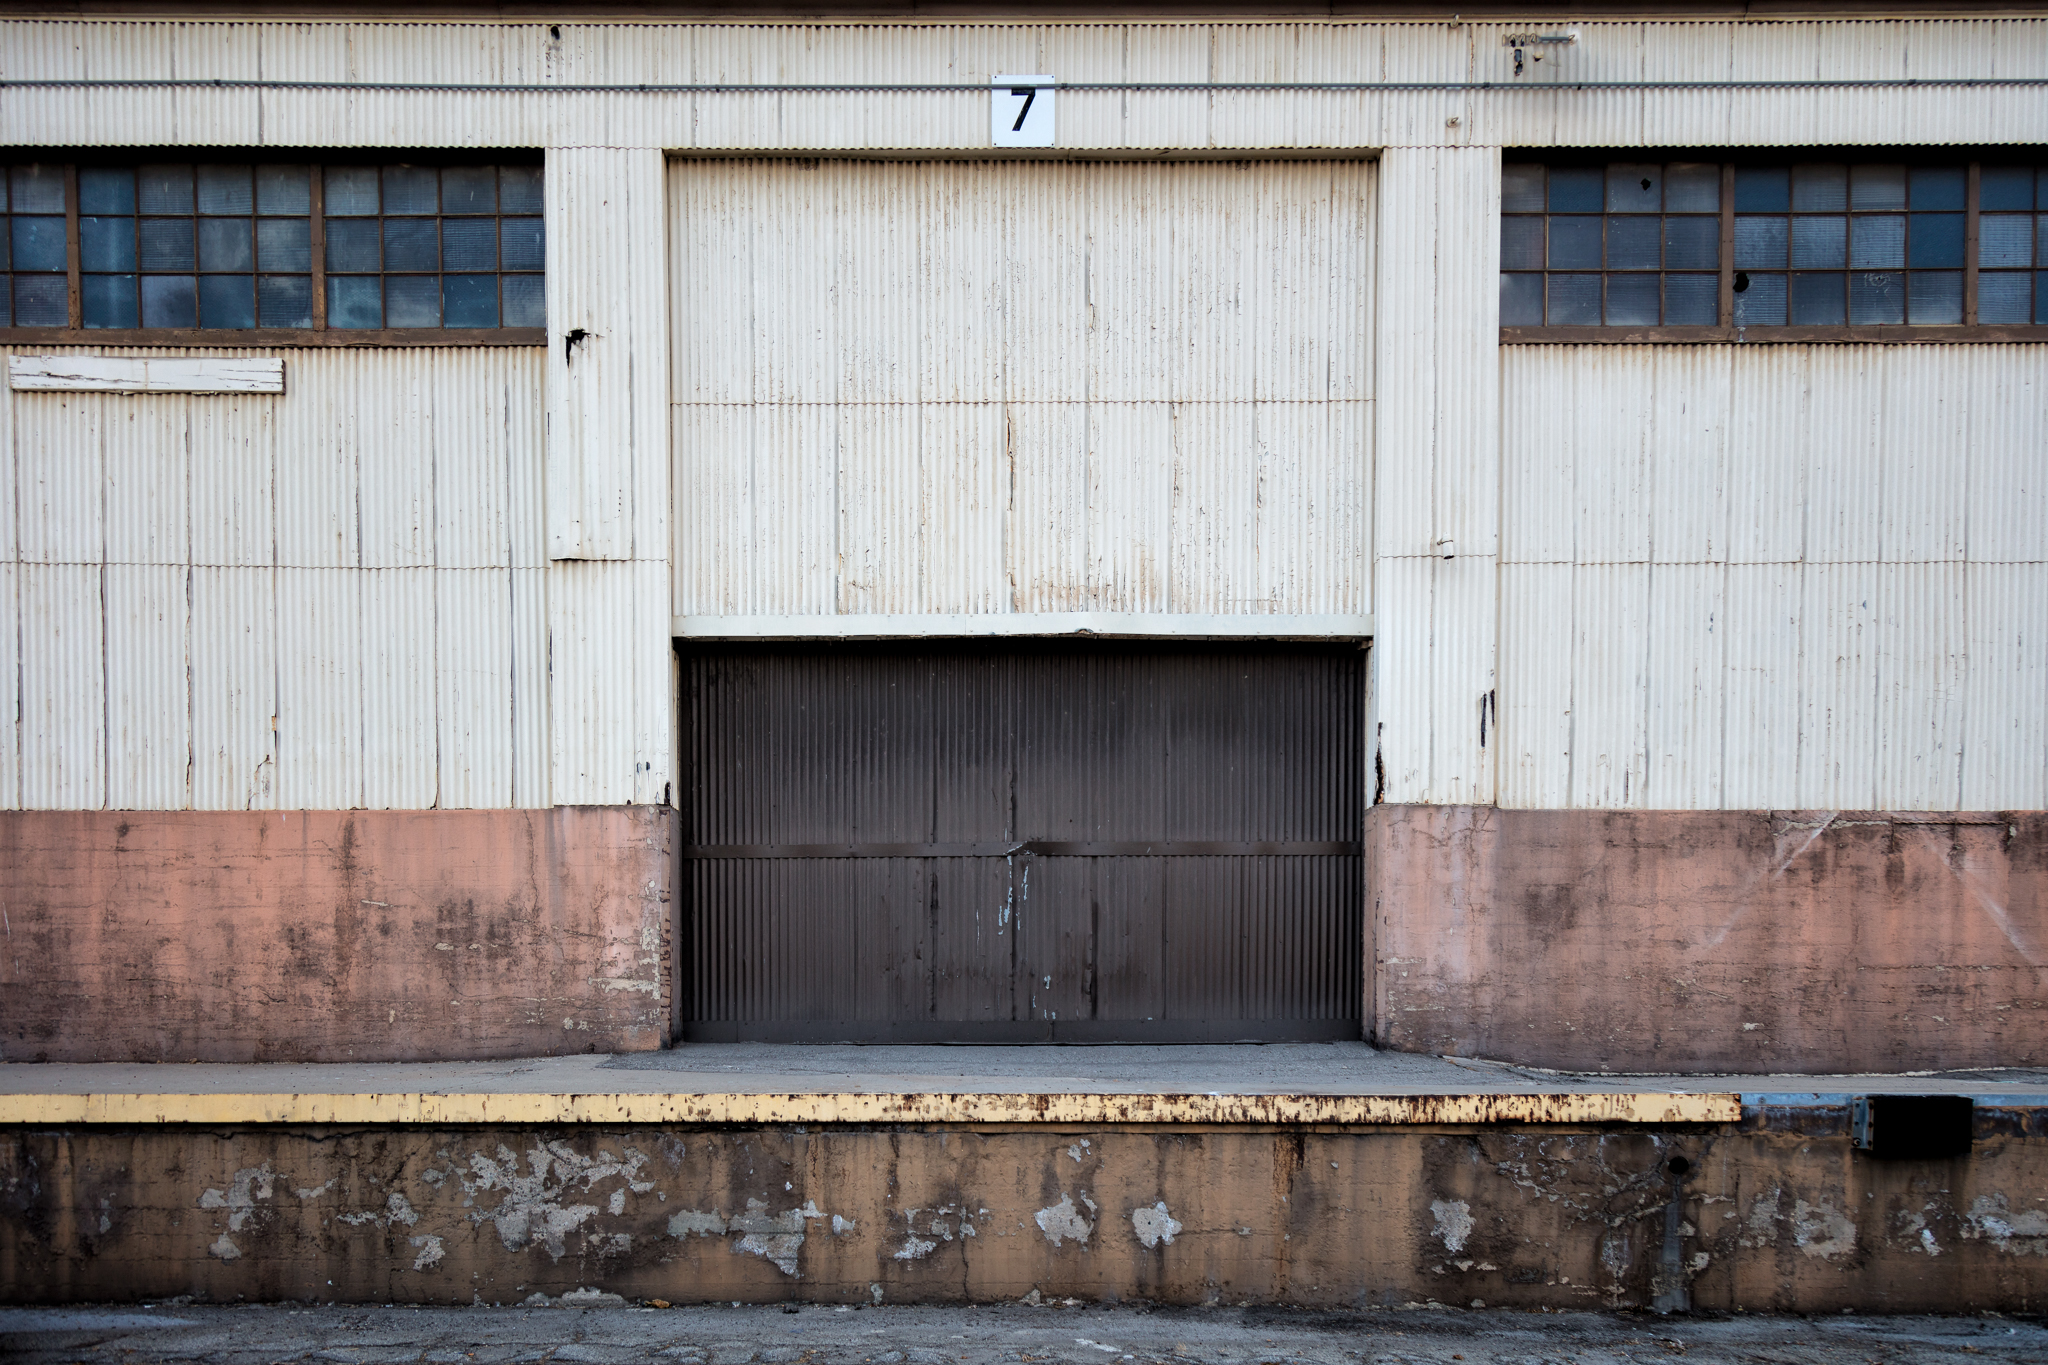 The first shot I took. I loved the textures and colors of these warehouse doors. There's a little story here, too, about access and history and utility.